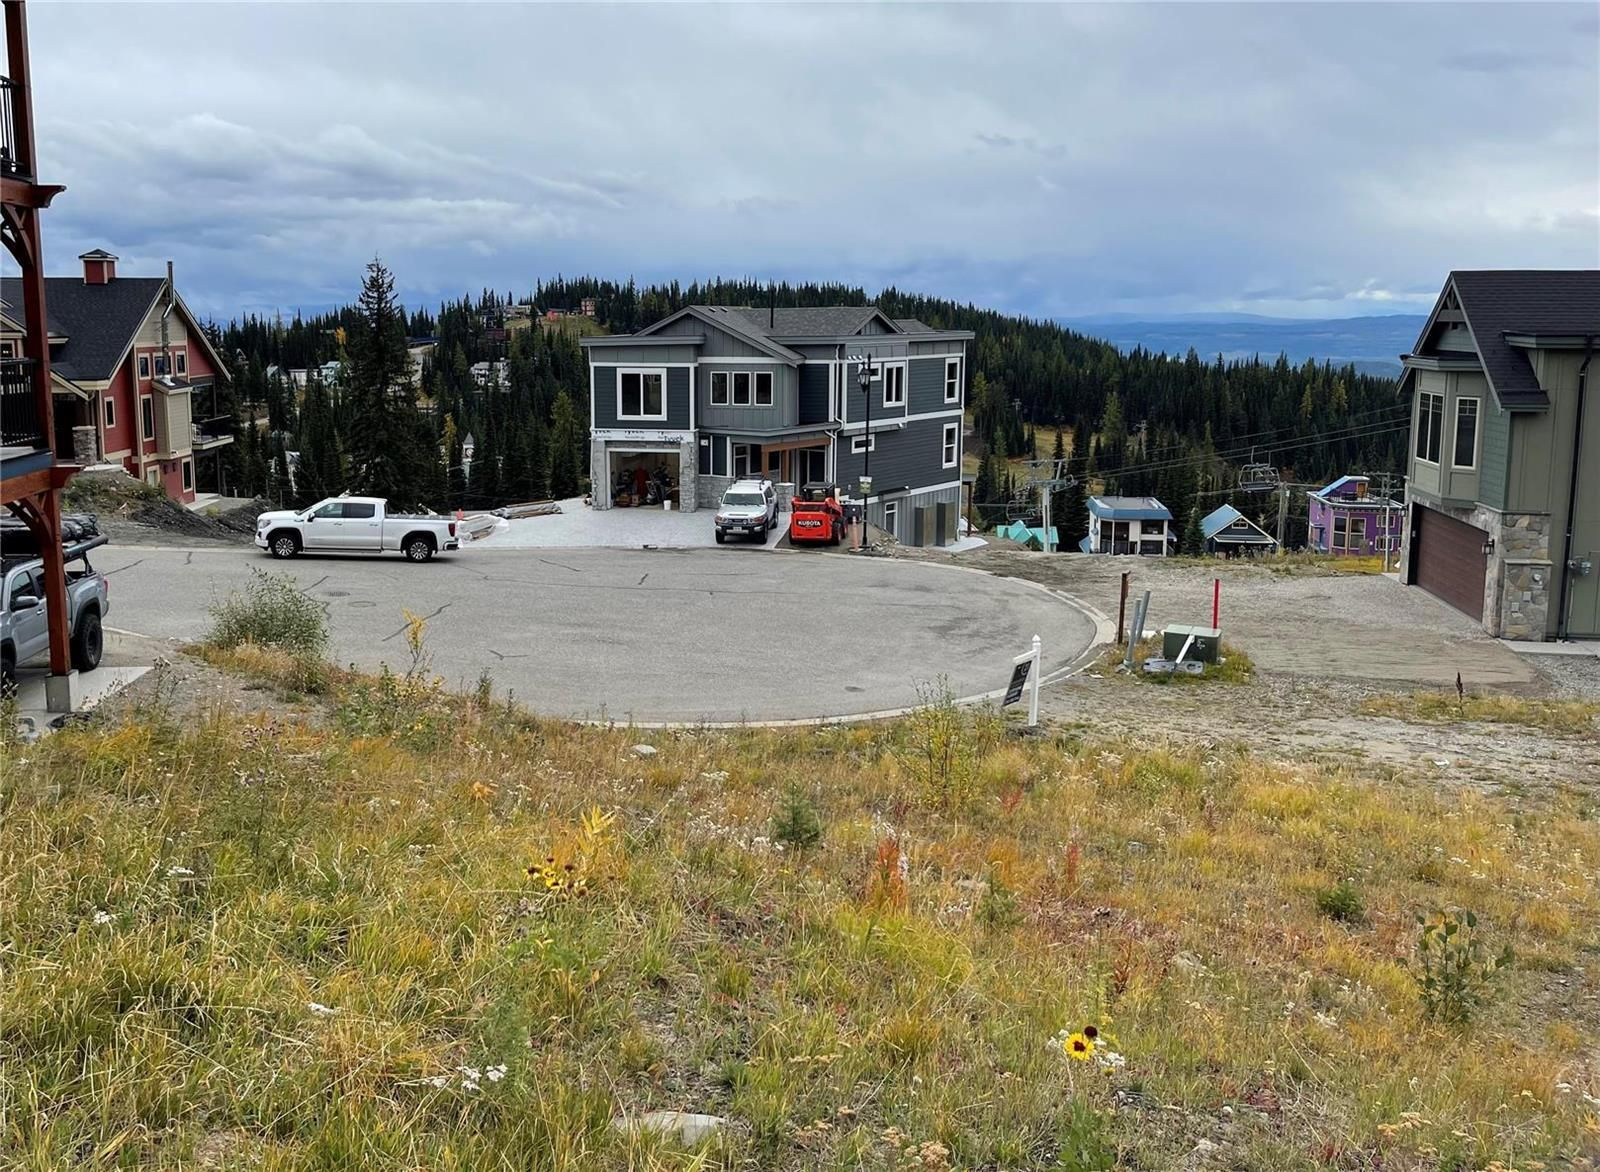 Main Photo: #Lot 43 195 Valerian Lane, in Silver Star: Vacant Land for sale : MLS®# 10240778